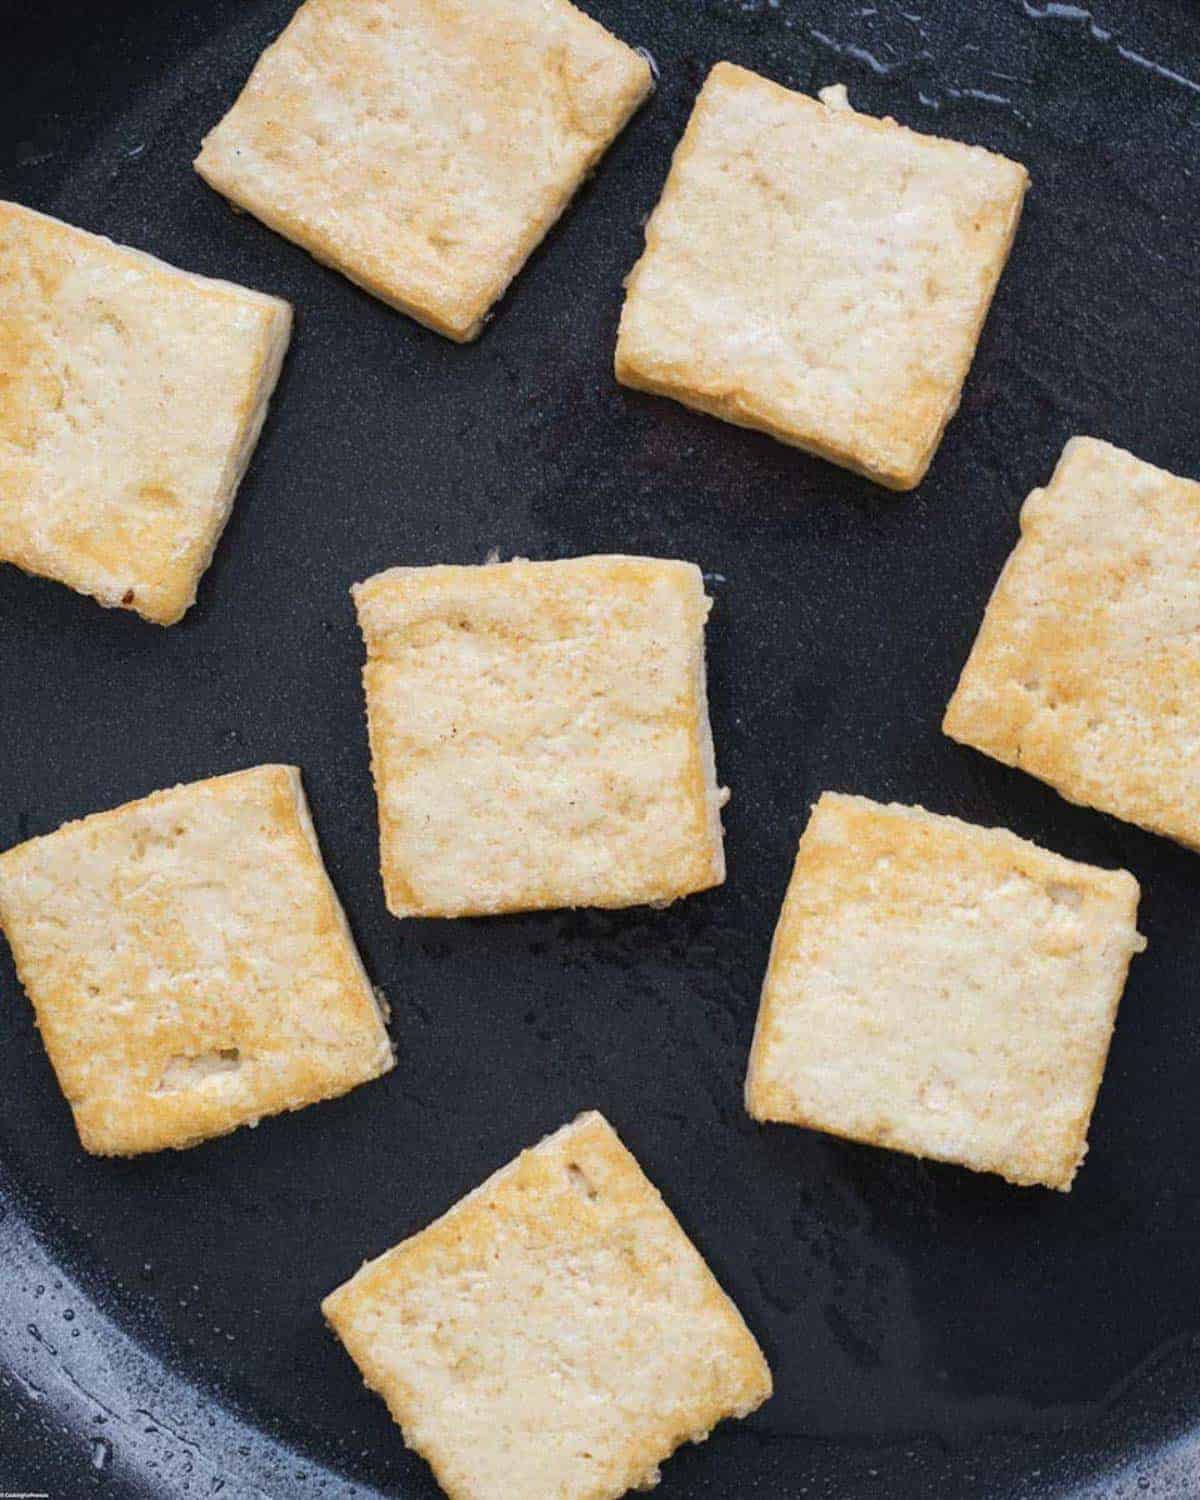 Pan fried, crispy tofu rectangles in a large skillet.